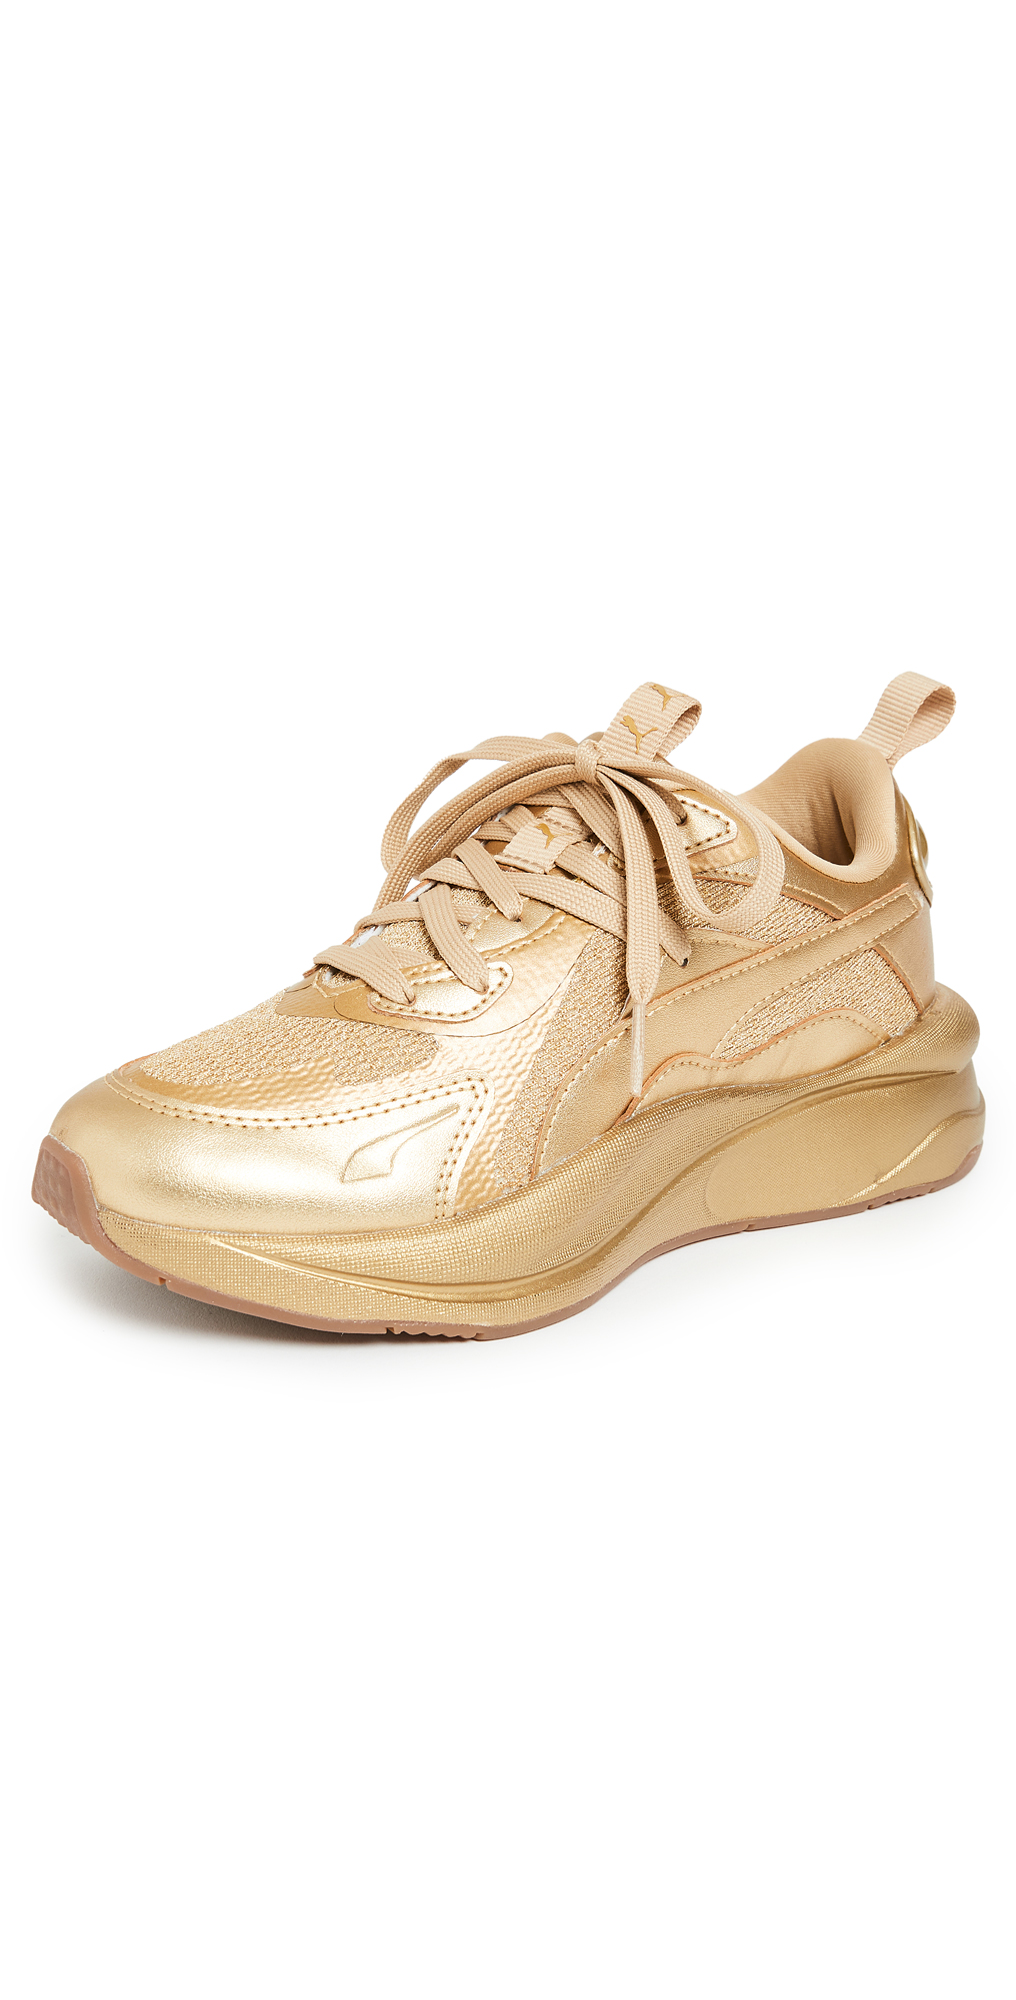 Puma Leathers RS CURVE GOLD SNEAKERS